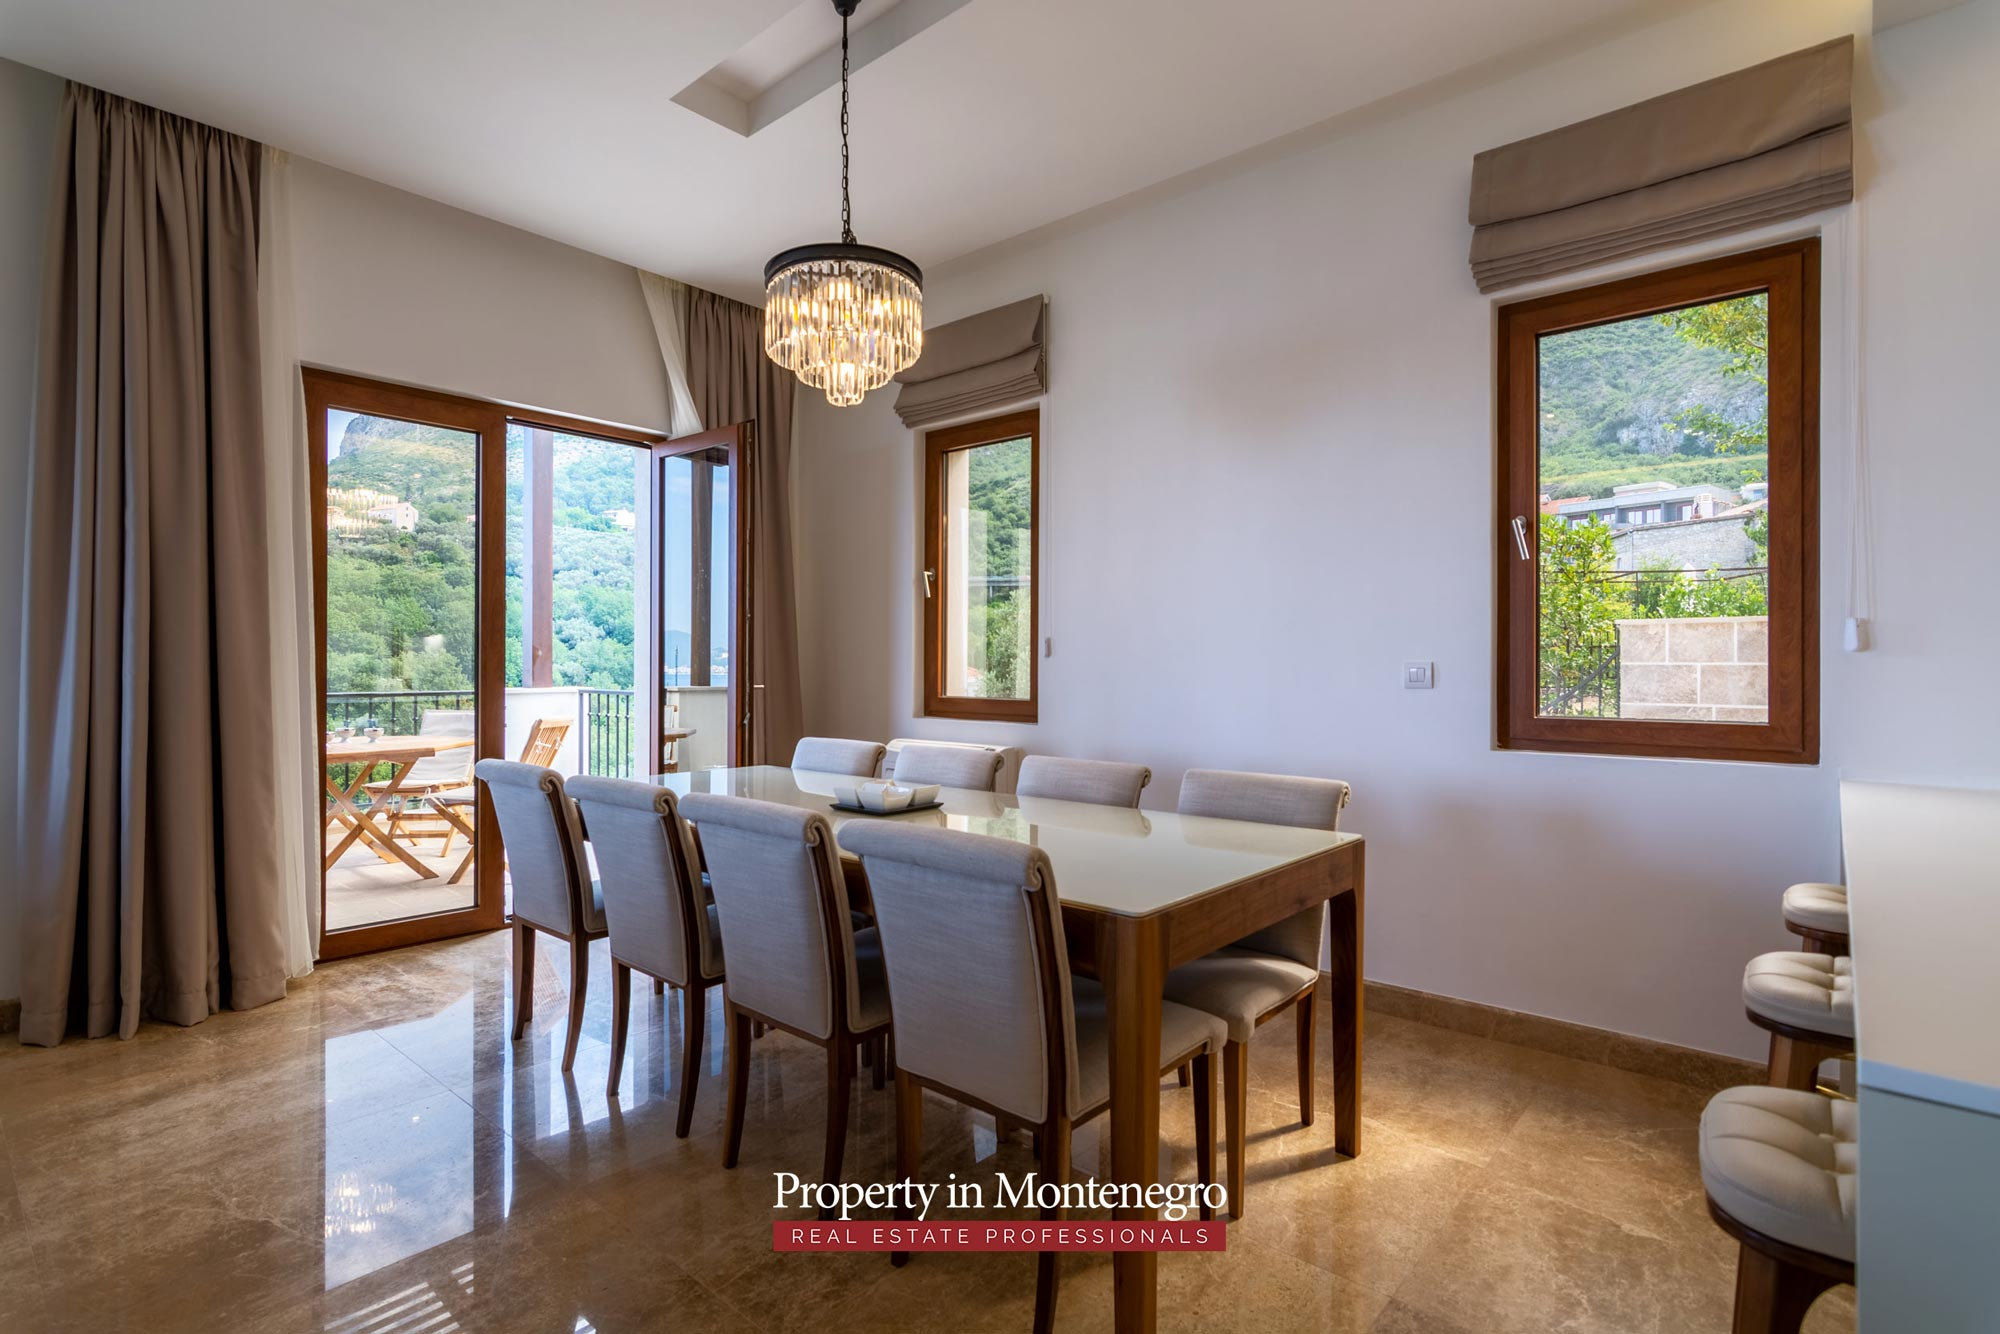 Luxury villa with swimming pool for sale in Budva